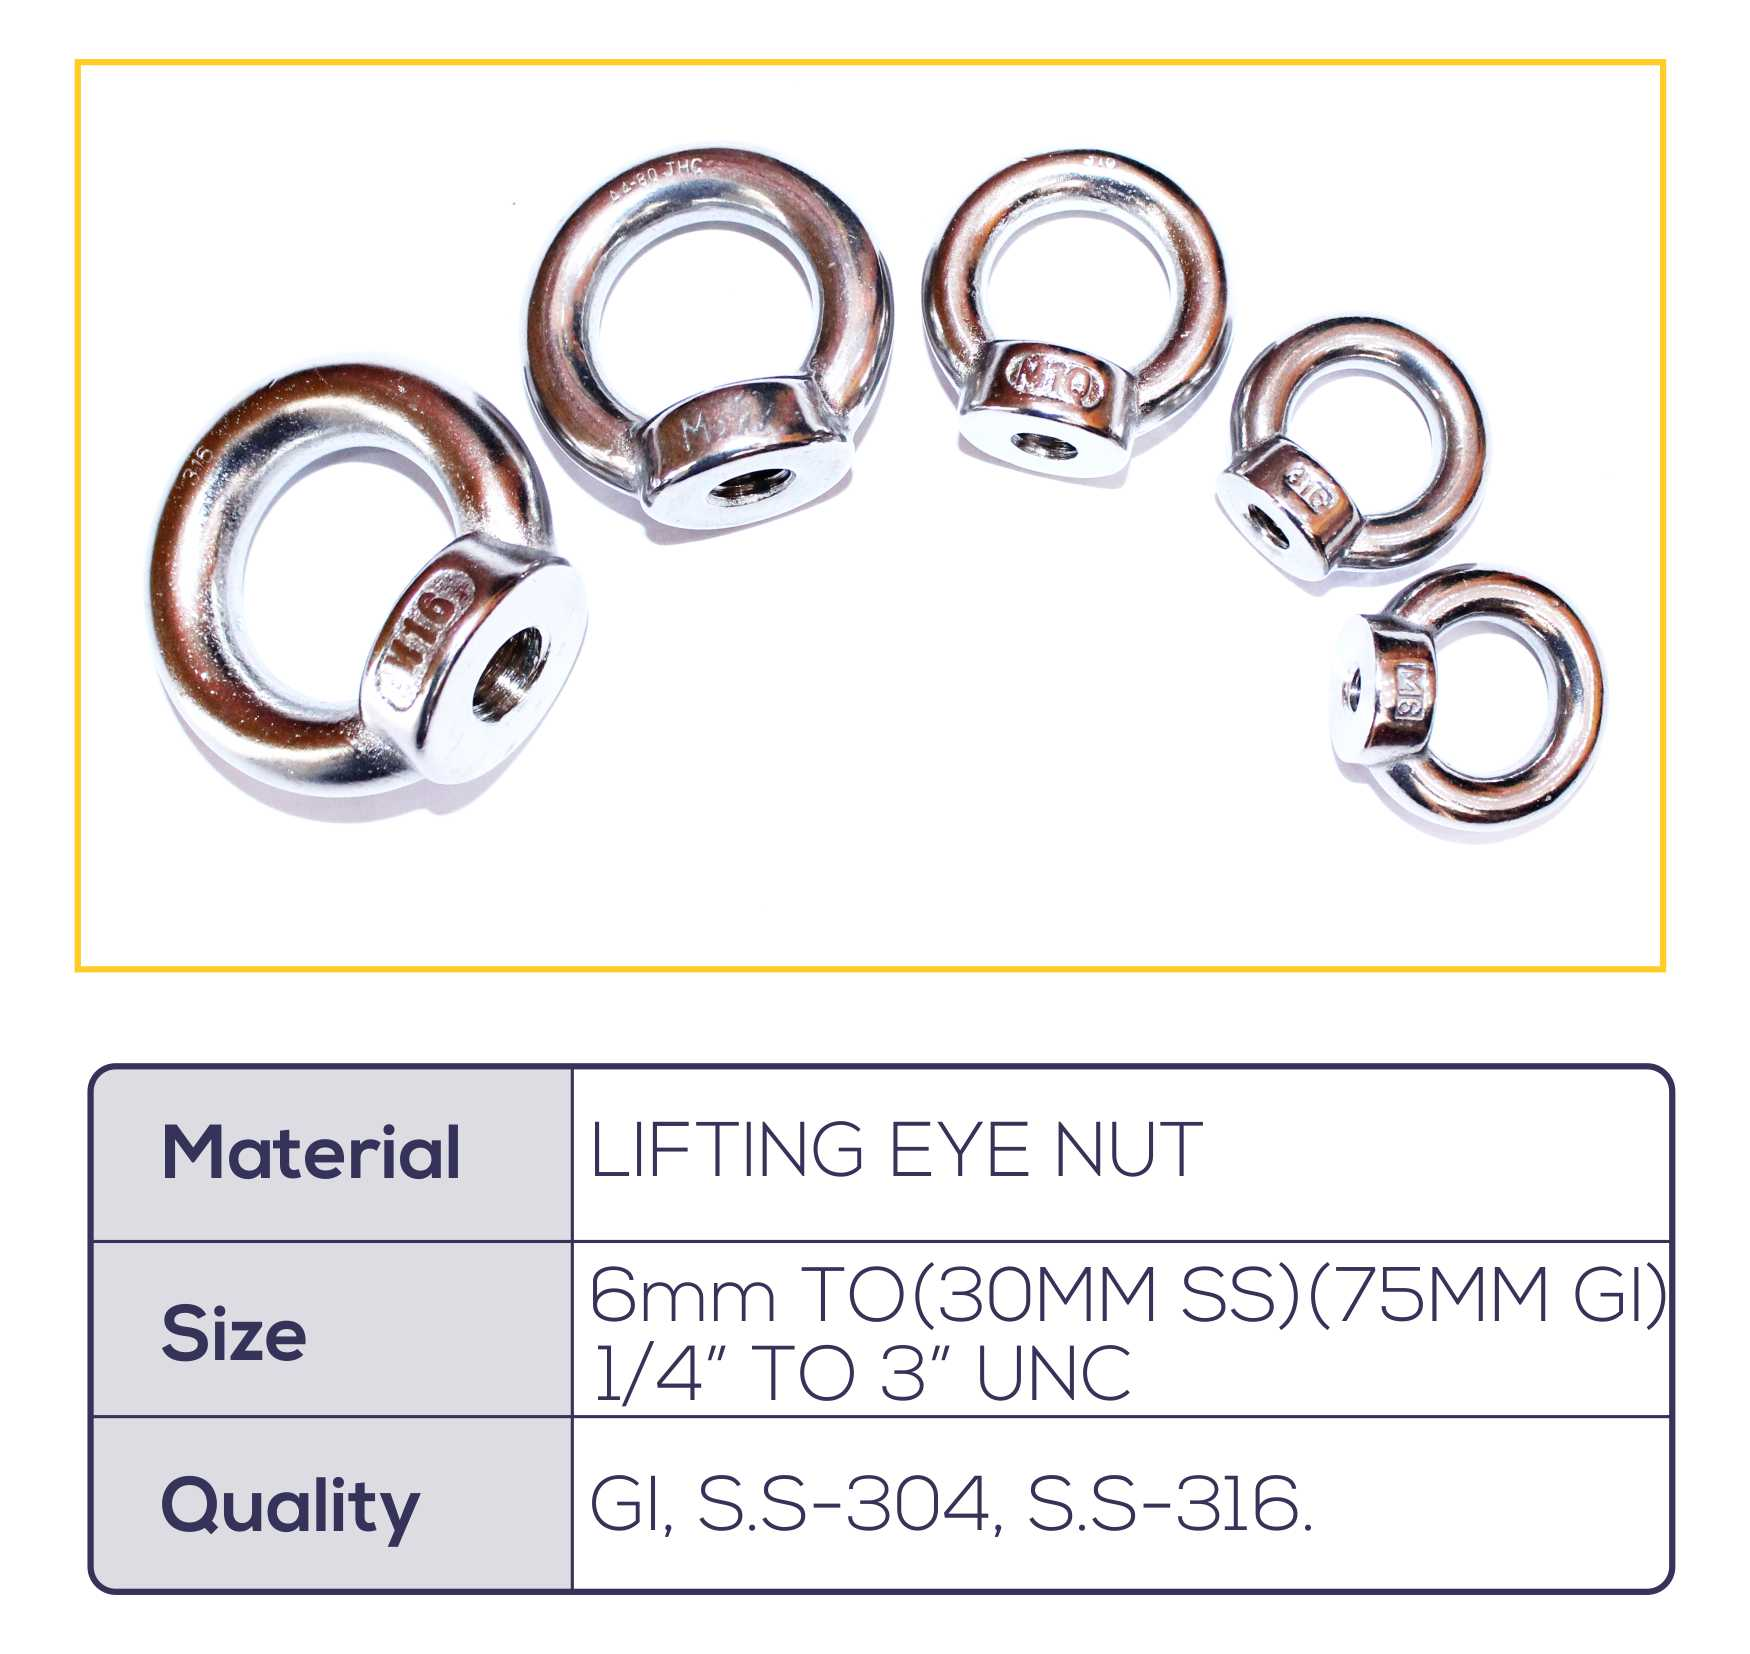 LIFTING EYE NUT